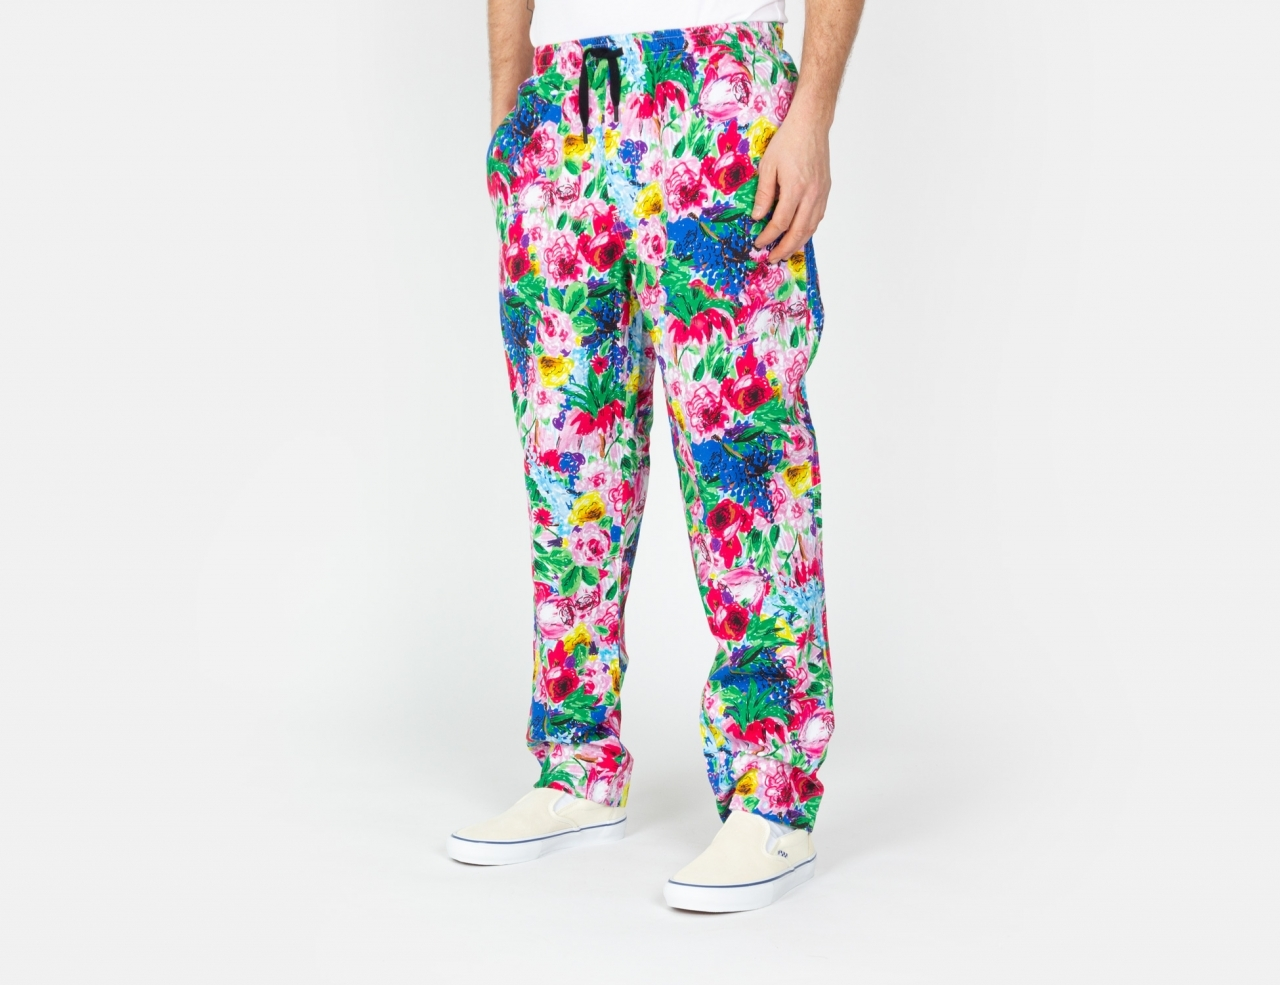 The Quiet Life Take A Break Beach Chino Pant - Floral